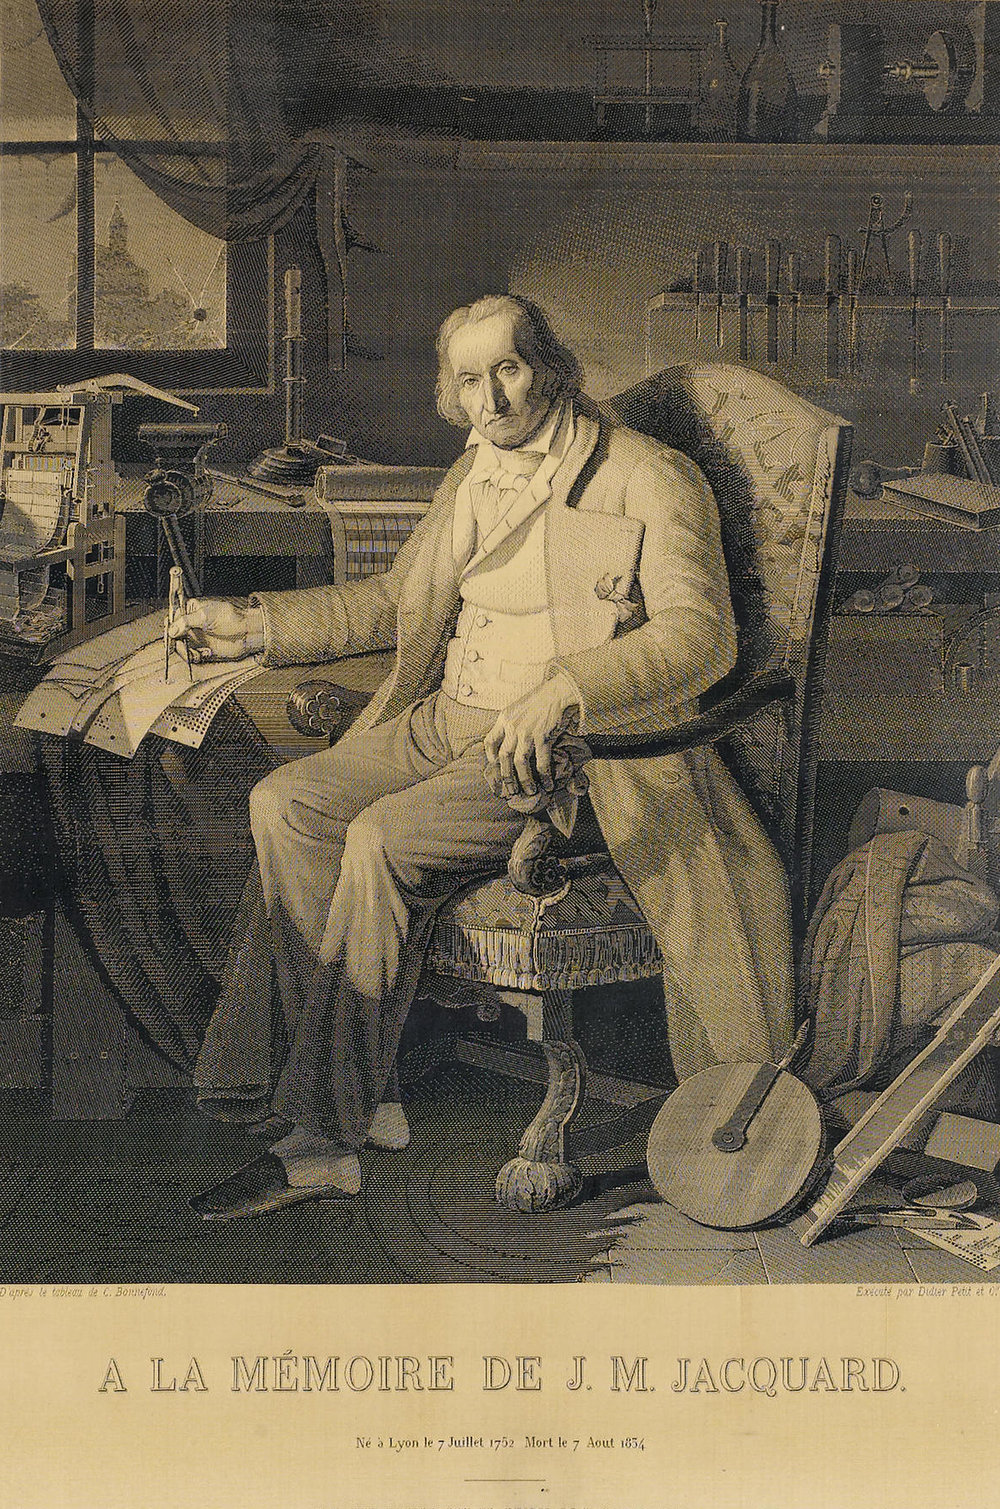 A self portrait of Jacquard made on his loom from silk